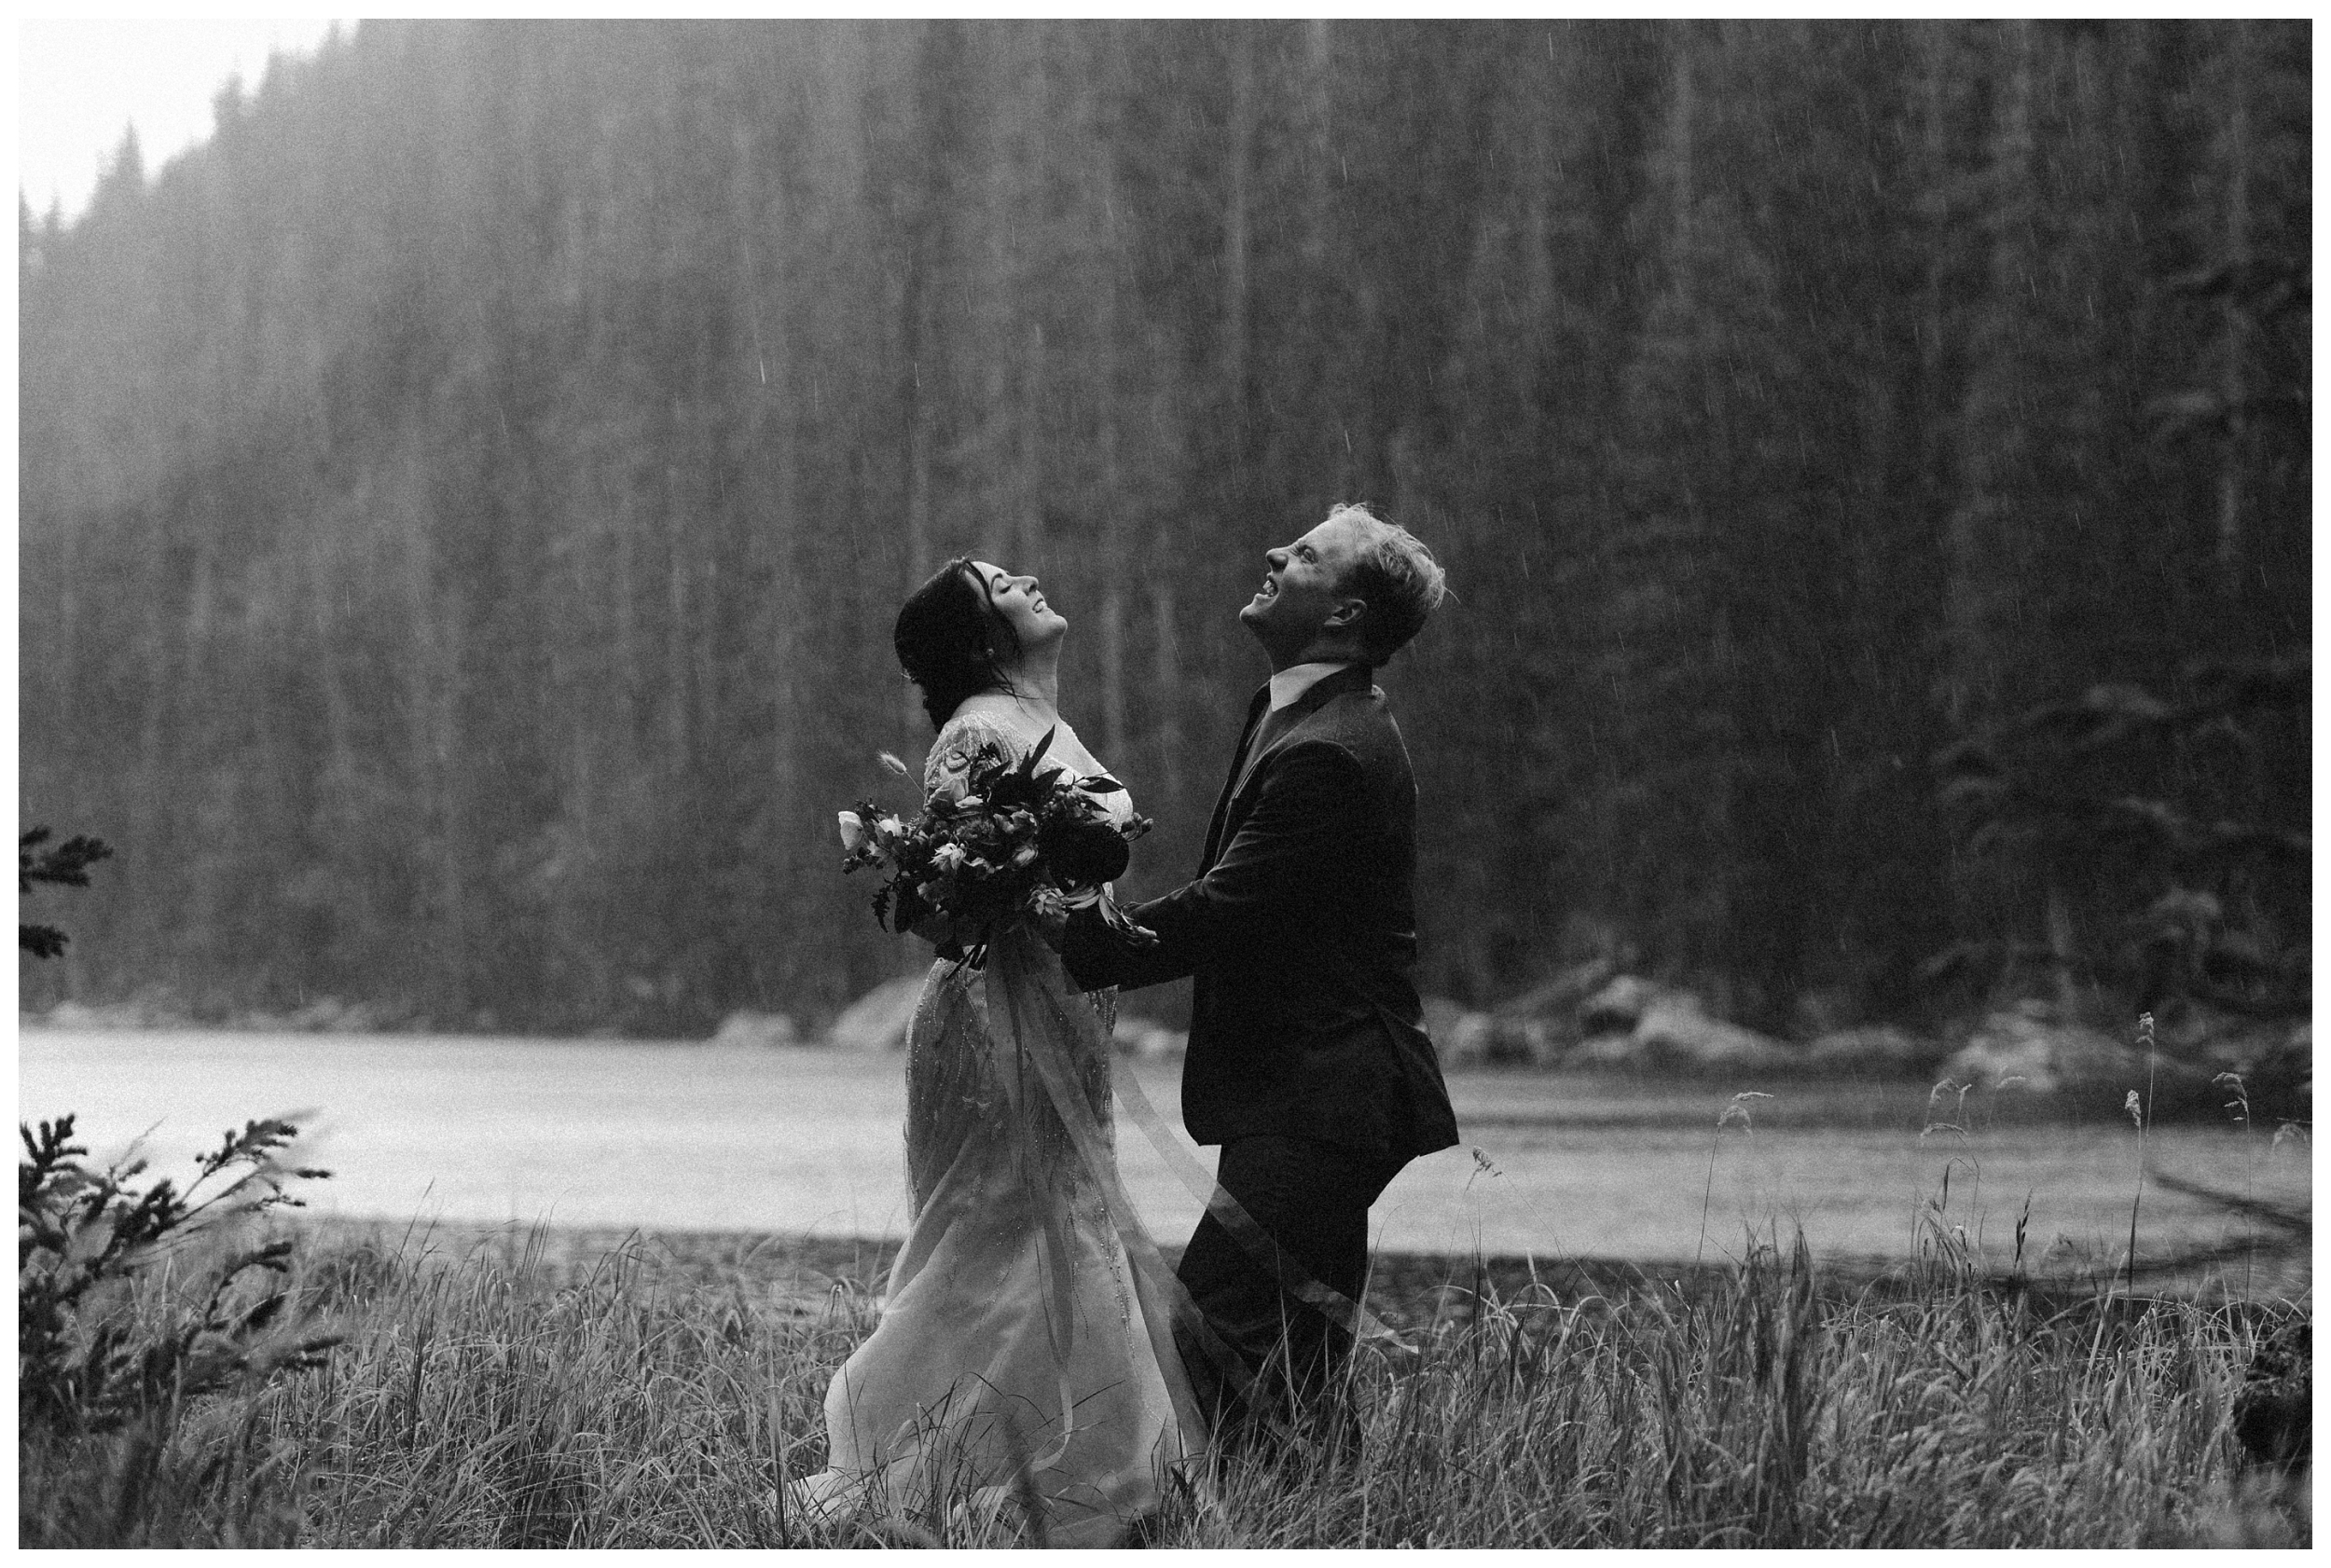 No matter what happens on your elopement wedding day, it's your day! Embrace the adventure, like this couple who's elopement day featured an epic summer thunderstorm. Photo by Maddie Mae, Adventure Instead Elopement Photographers.